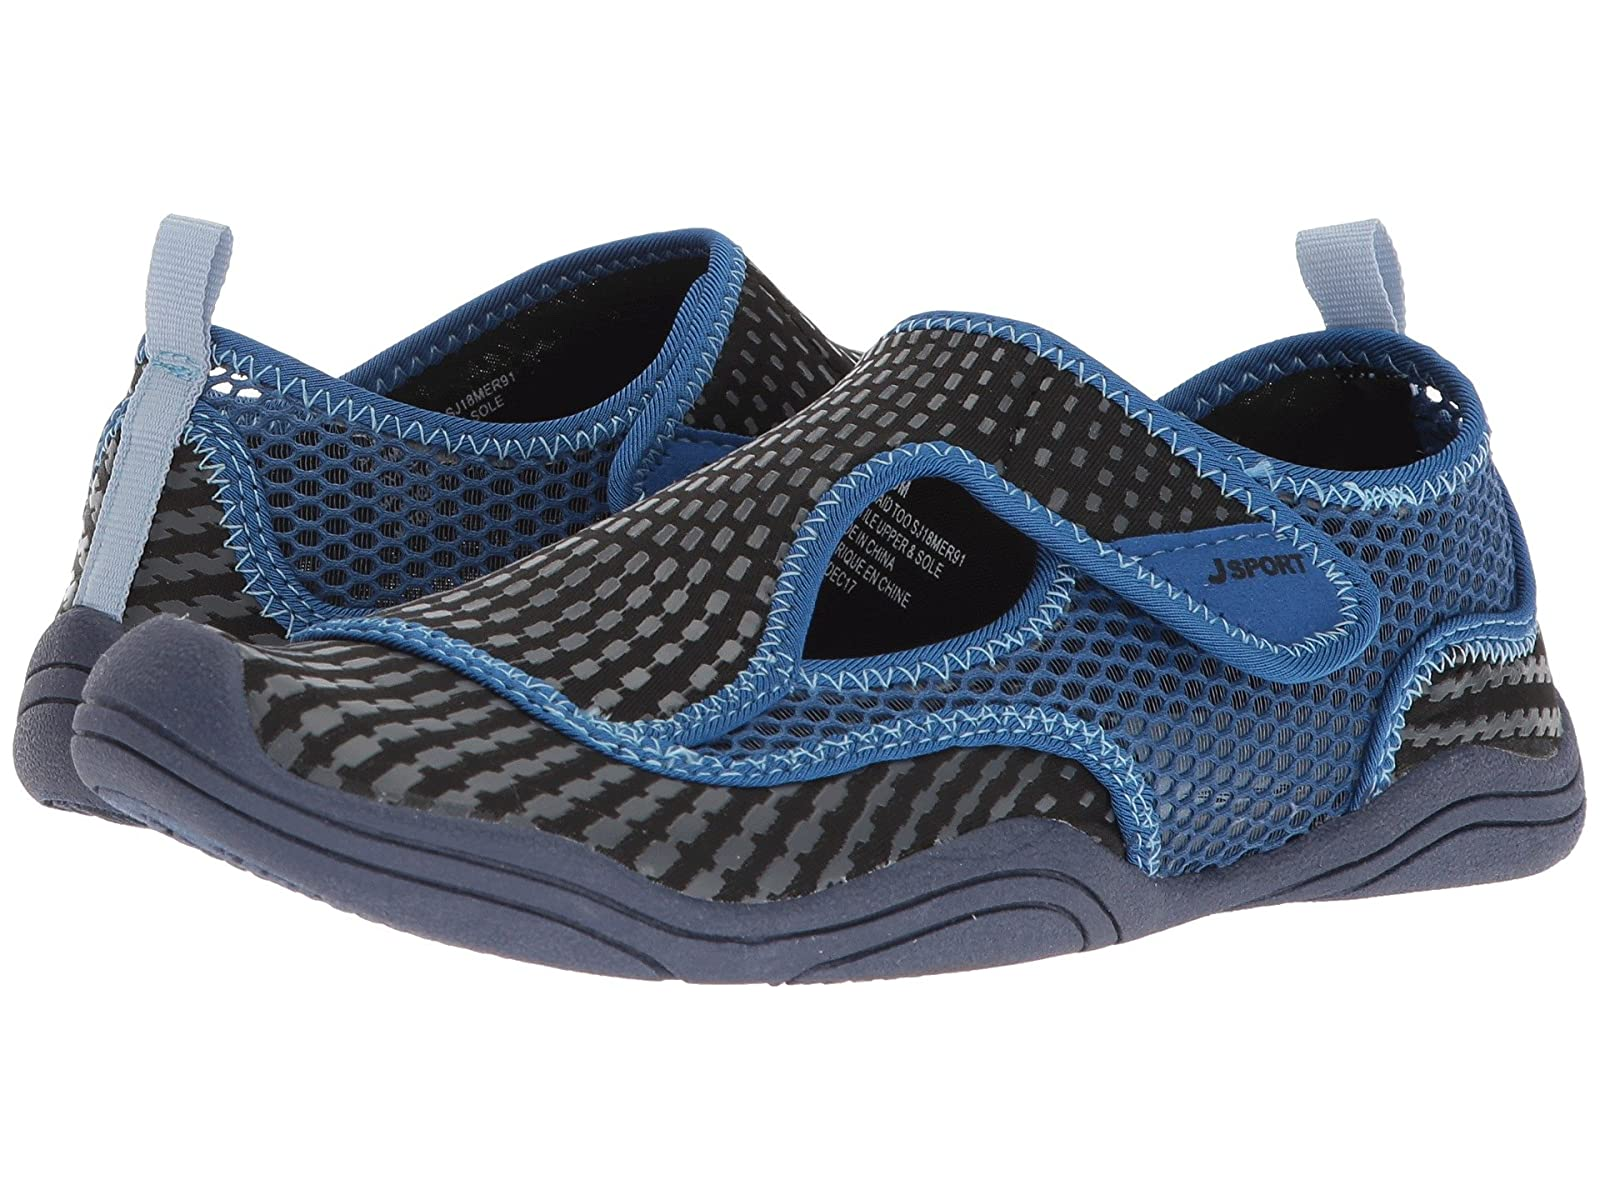 JBU Mermaid TooAtmospheric grades have affordable shoes